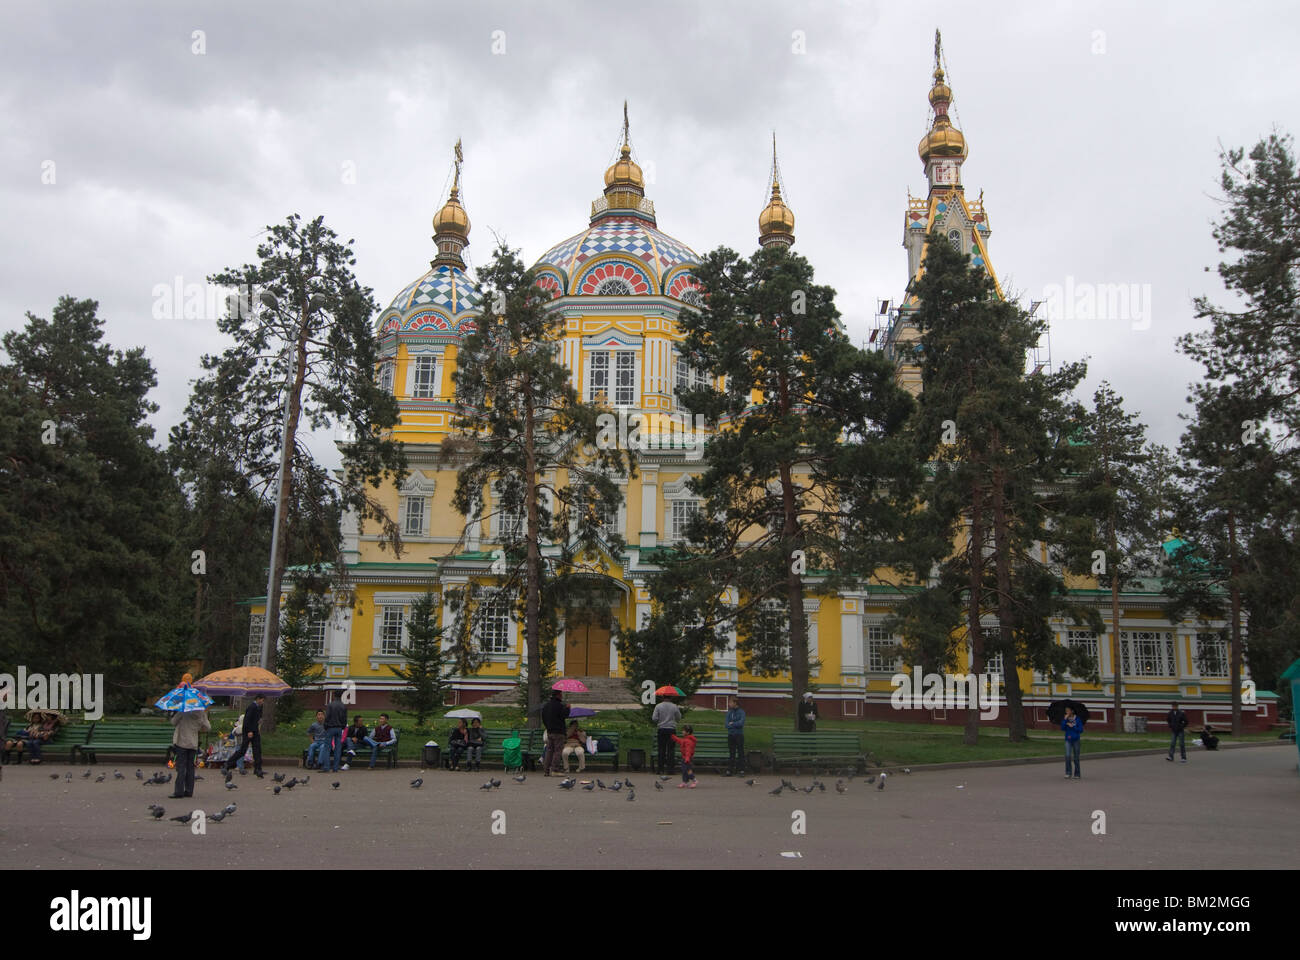 The magnificent Cathedral of the Holy Ascension, Almaty, Kazakhstan - Stock Image